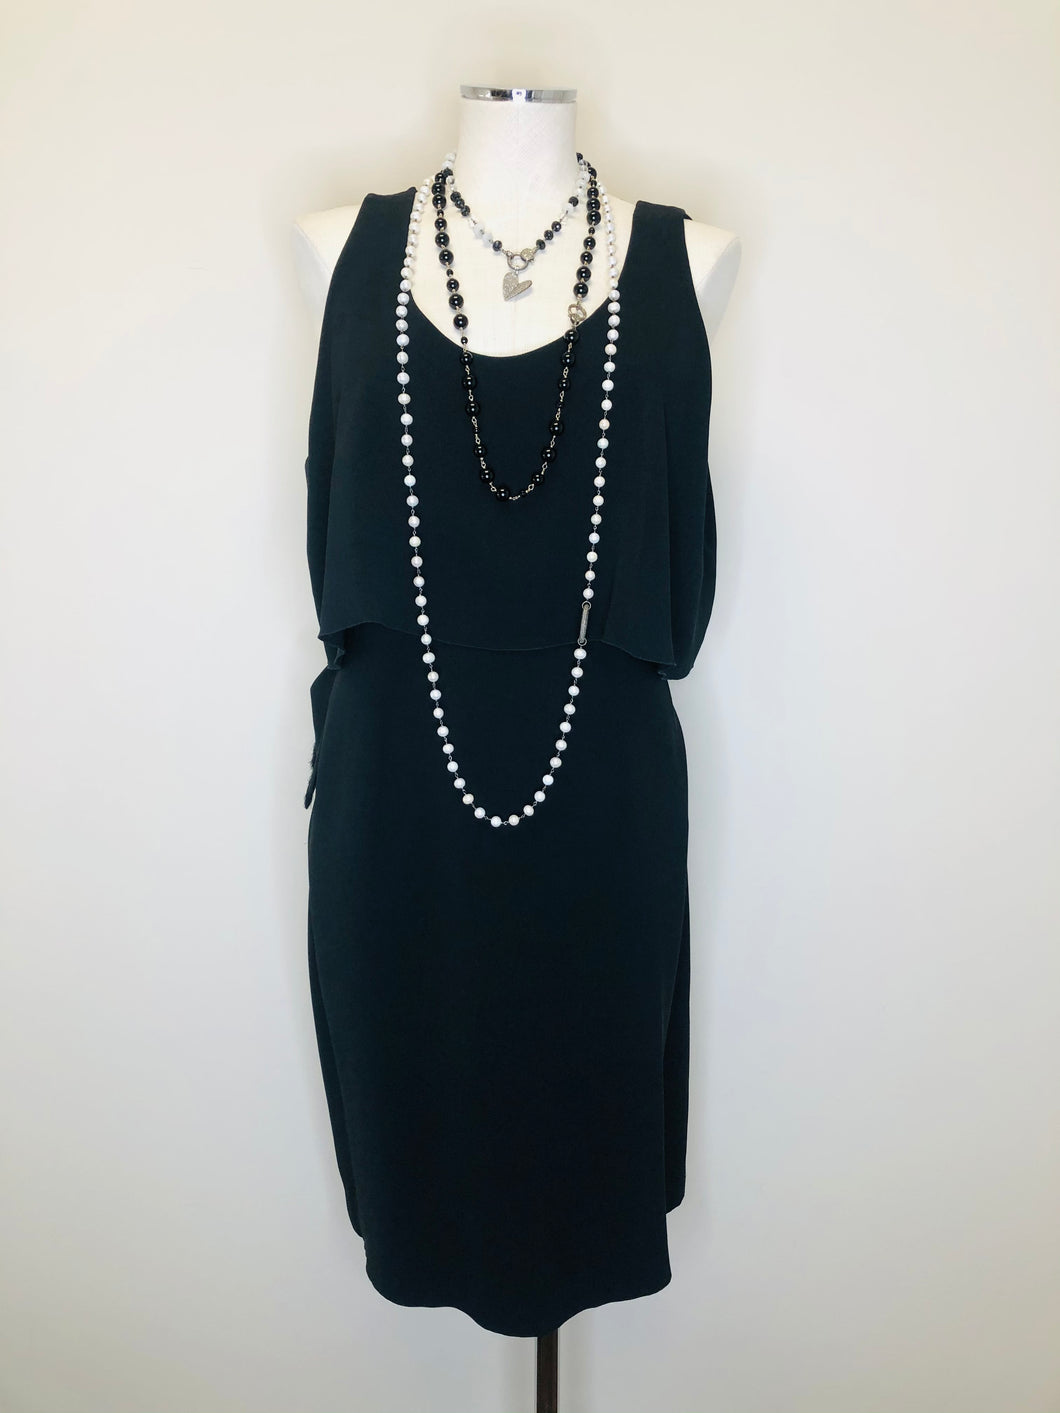 CHANEL Little Black Dress Size 44